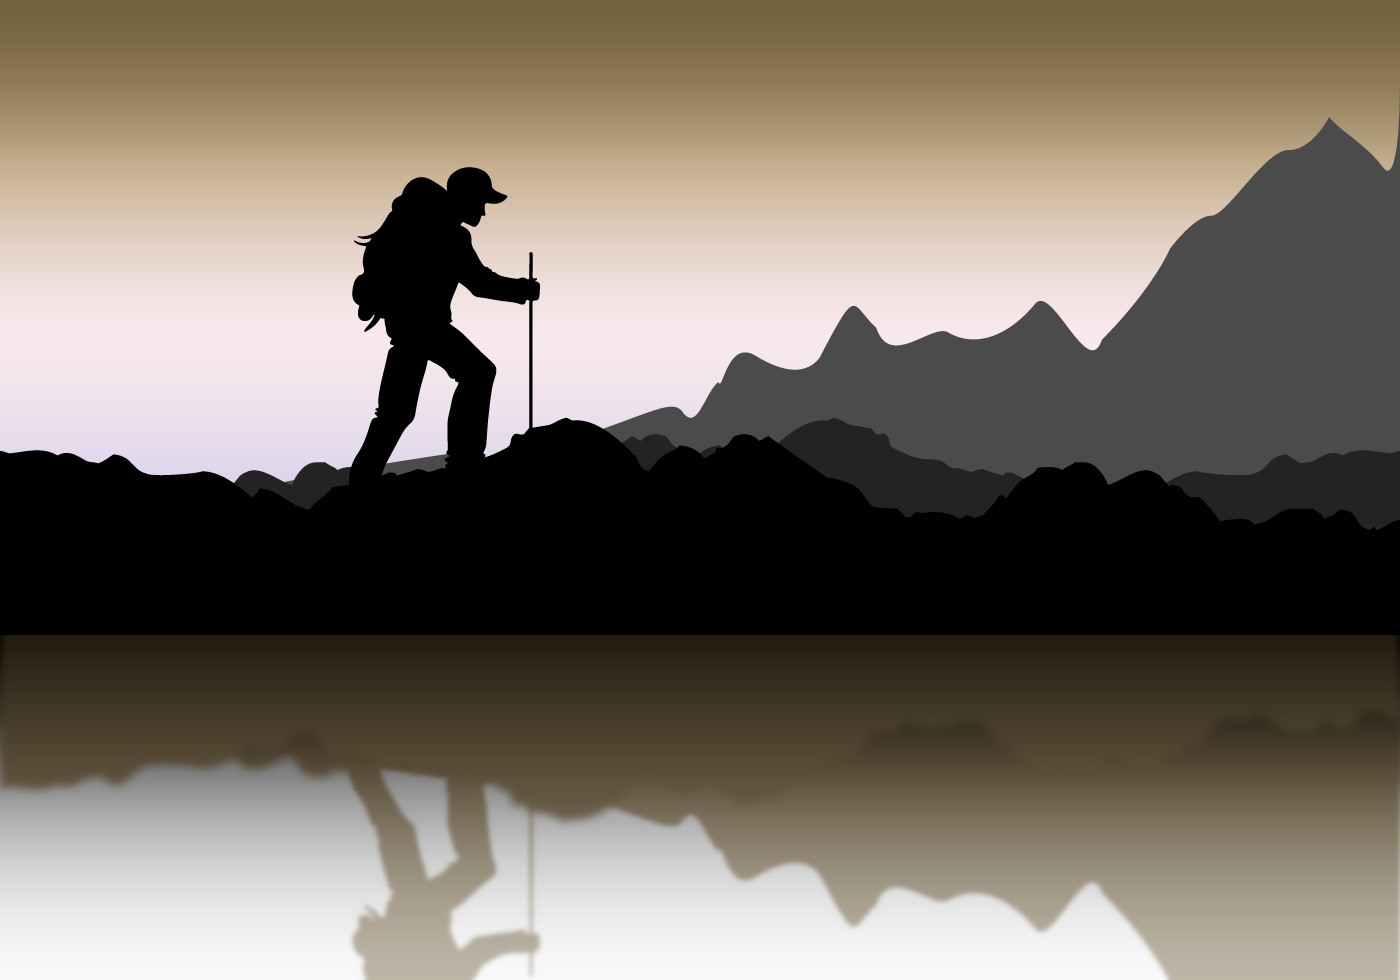 Mountaineer Landscape silhouette - Download Free Vector ...